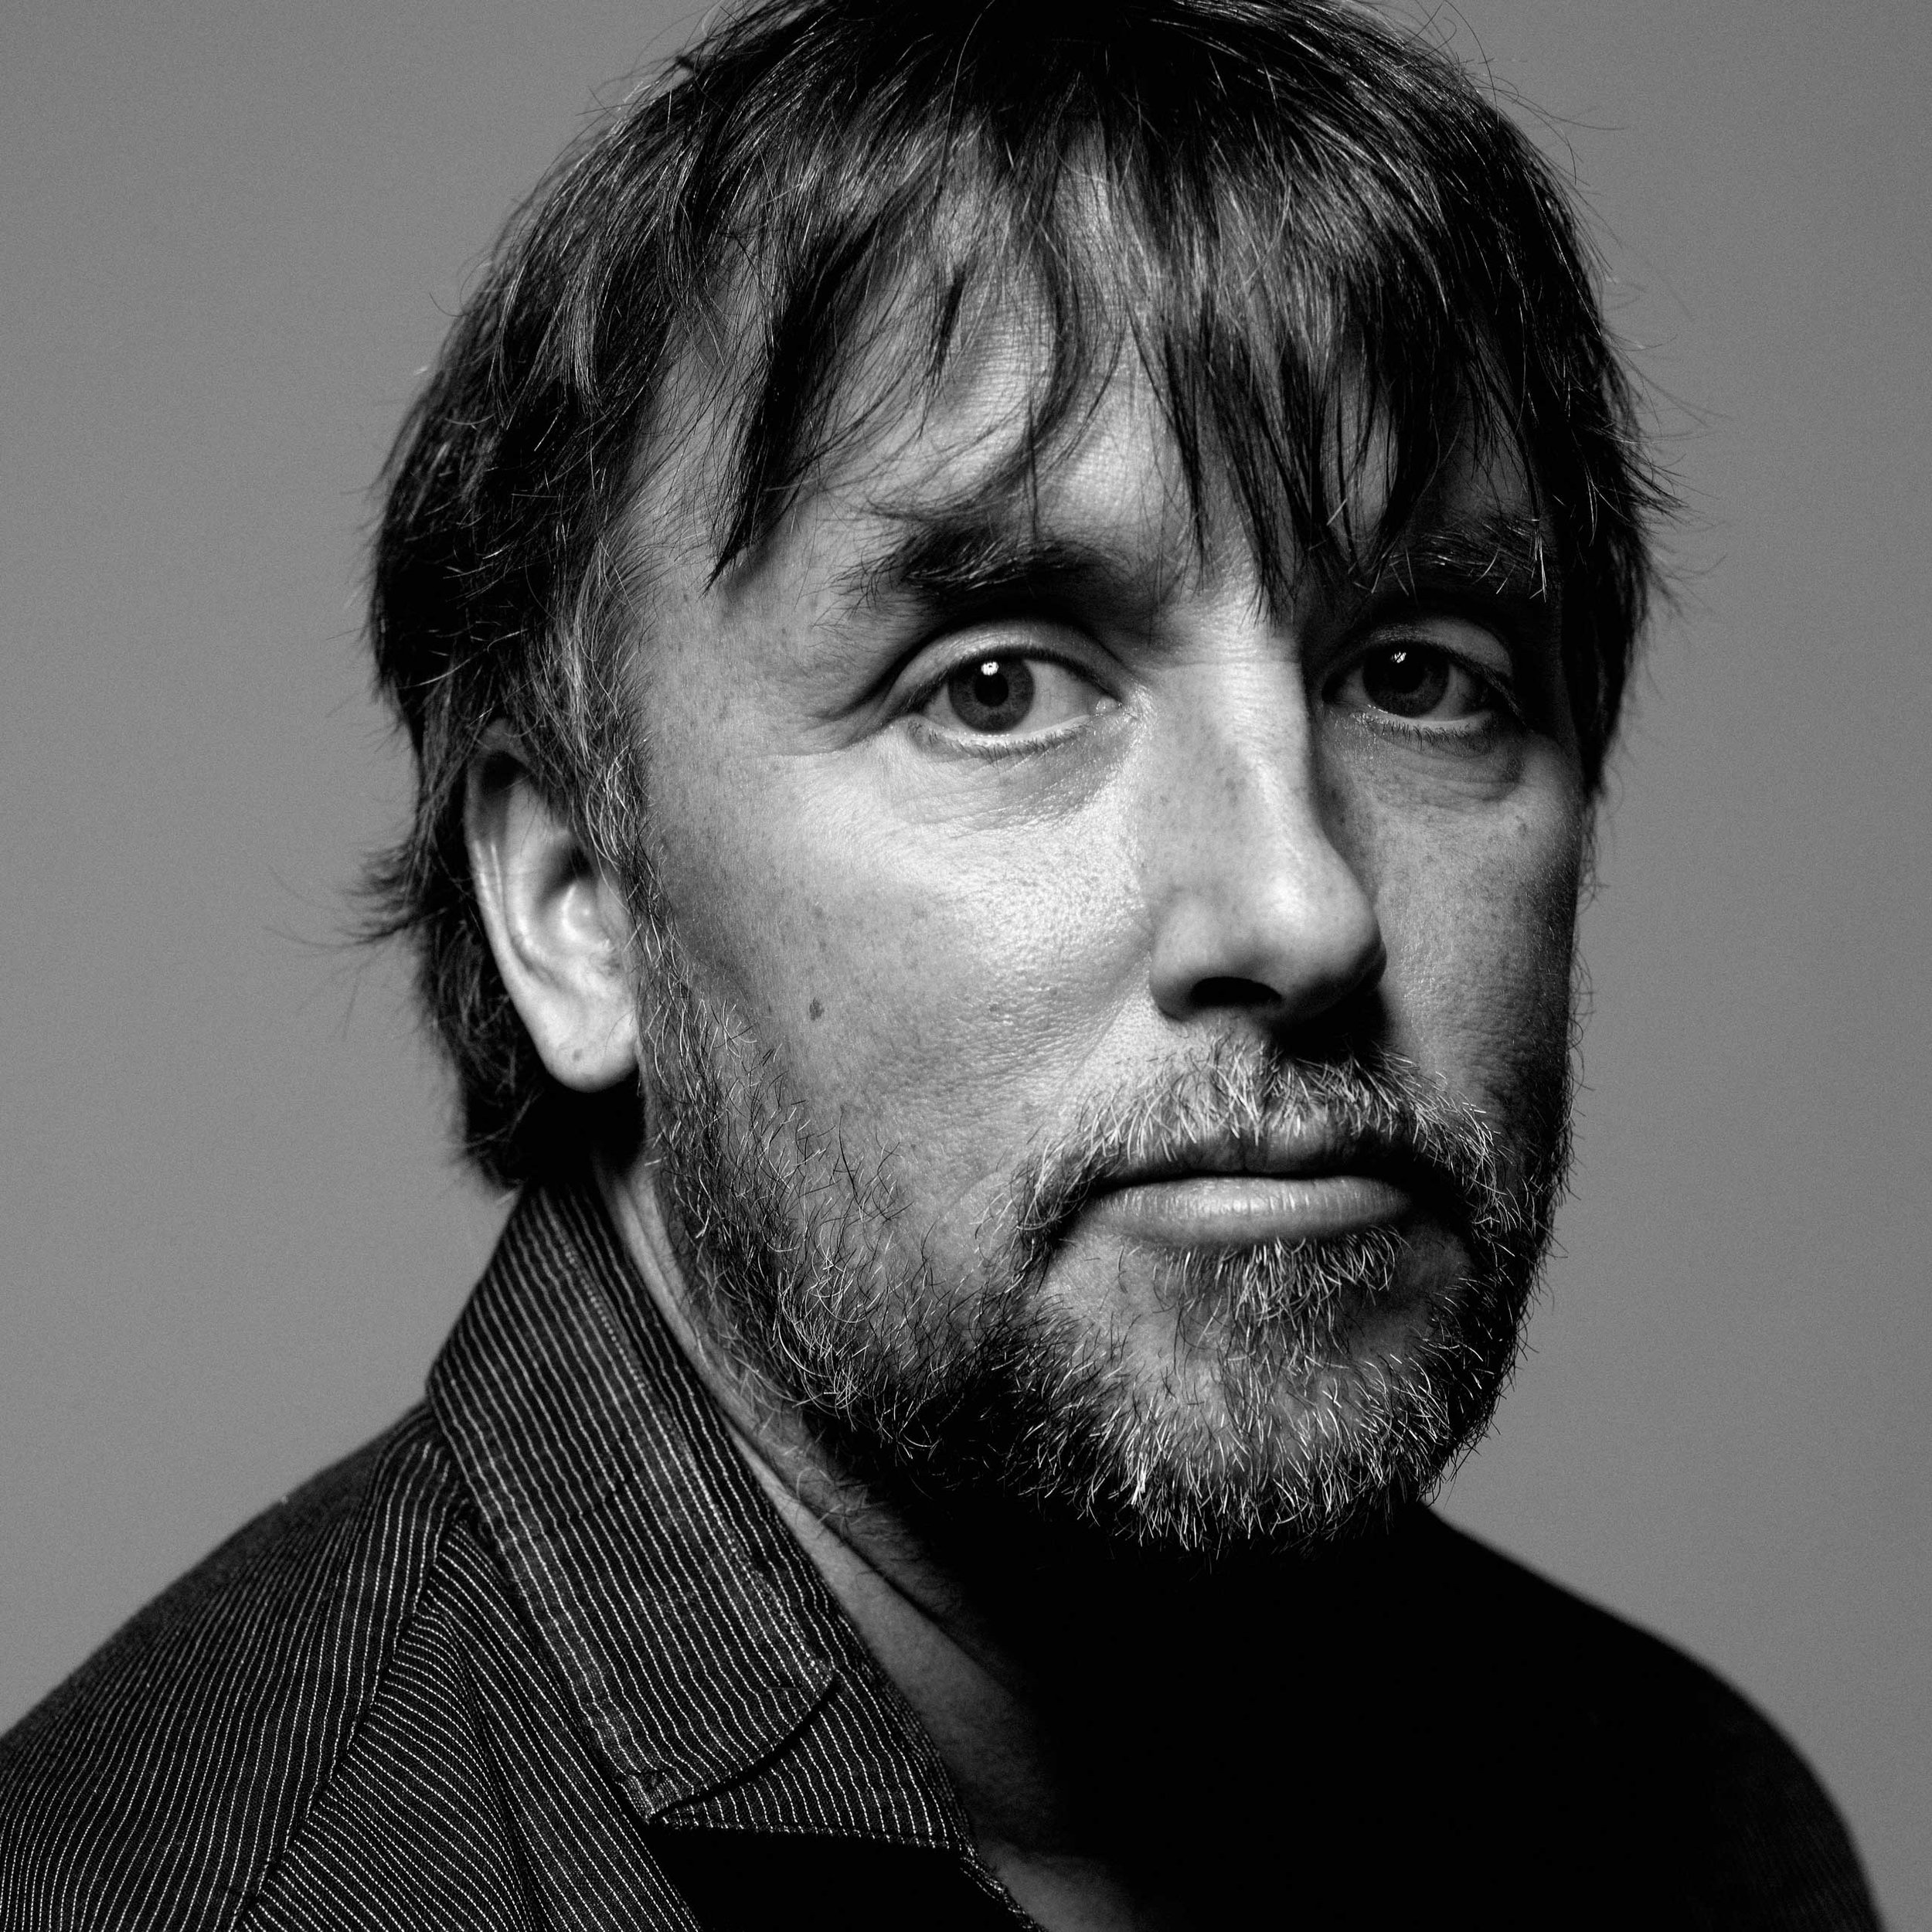 RICHARD LINKLATER - EXECUTIVE PRODUCERTexas native Richard Linklater — the Oscar-nominated director of SLACKER, DAZED AND CONFUSED, BEFORE SUNRISE, and BOYHOOD, among other films — brings a unique indie sensibility to this project. Linklater's influence can be seen in the diverse ensemble of Texans we have followed along this journey.